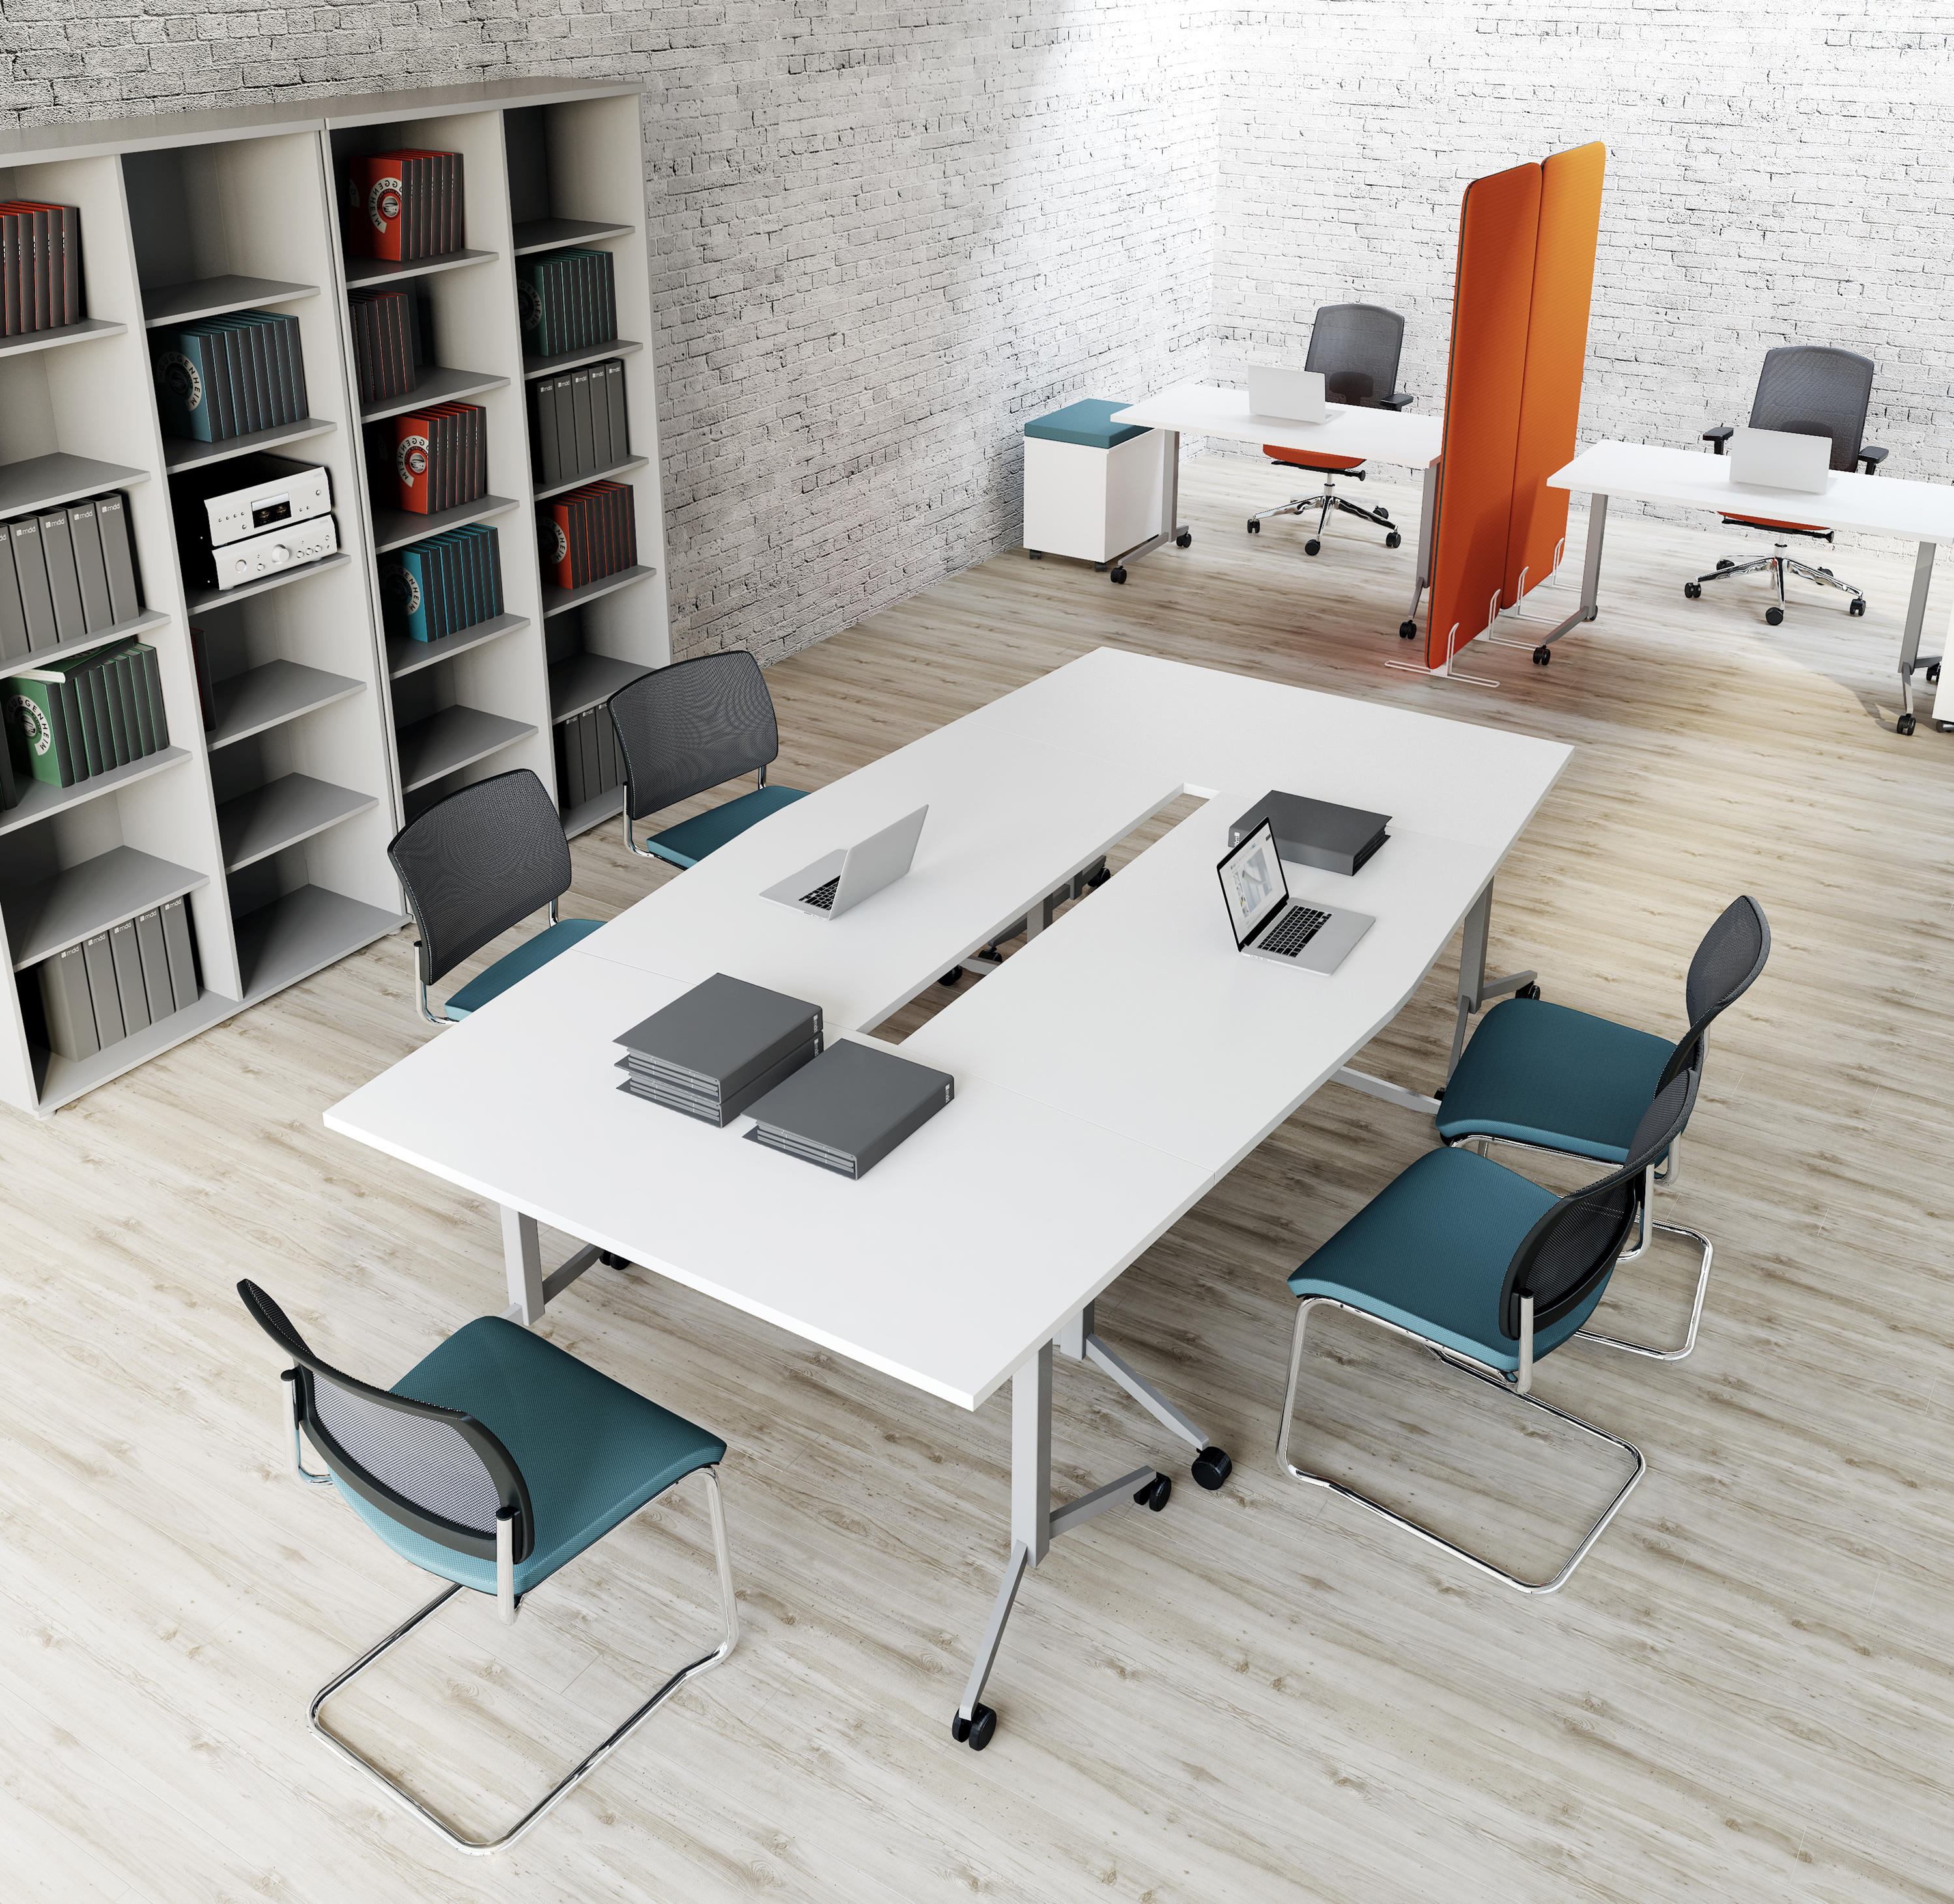 Meeting Room Tables Folding Table Contract Tables From Mdd Architonic